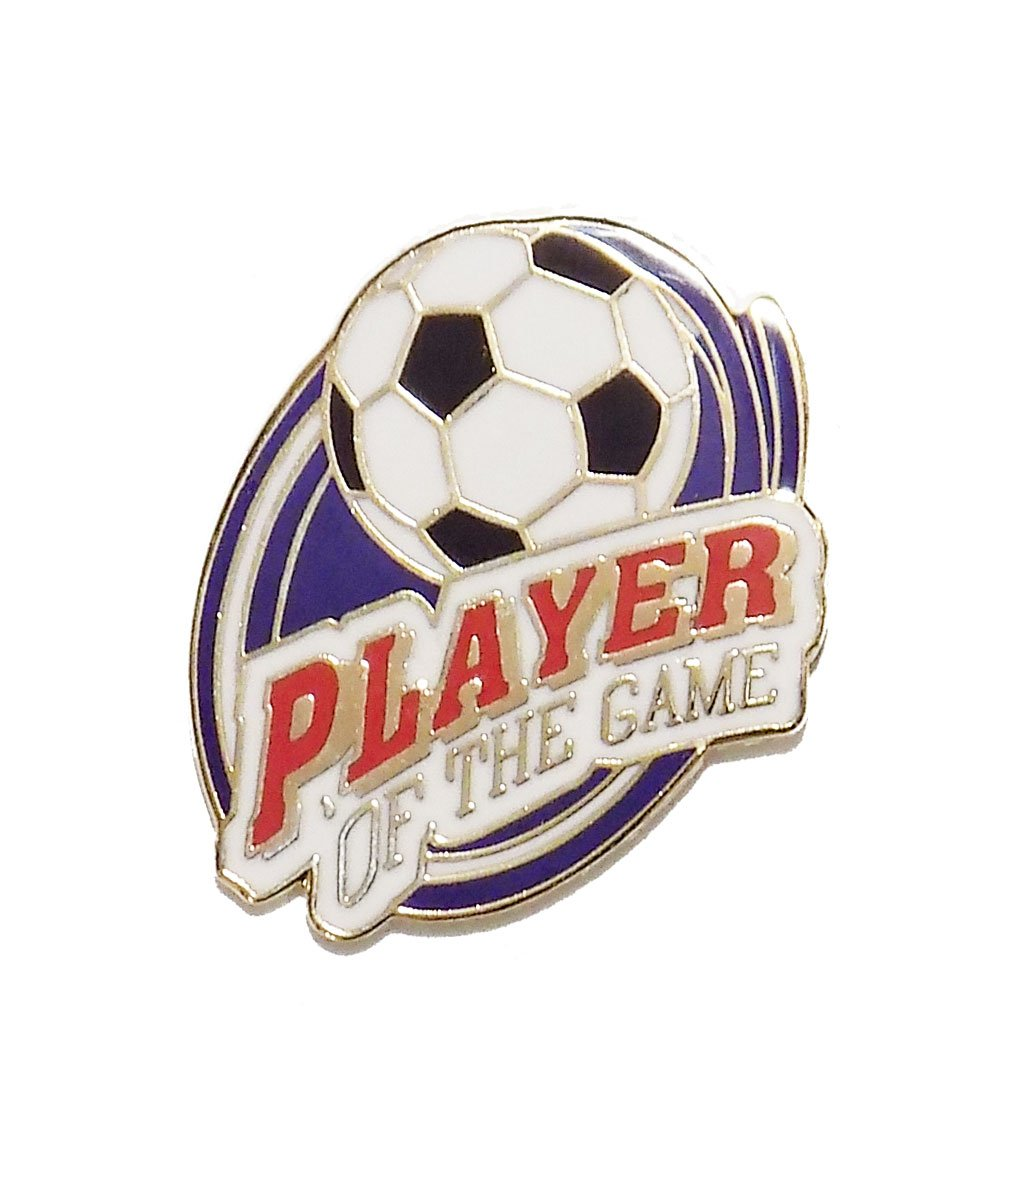 # 30 Player of the Game Soccer Pin (1 inch actual size) Code Four Athletics PIN-30-PlayGame